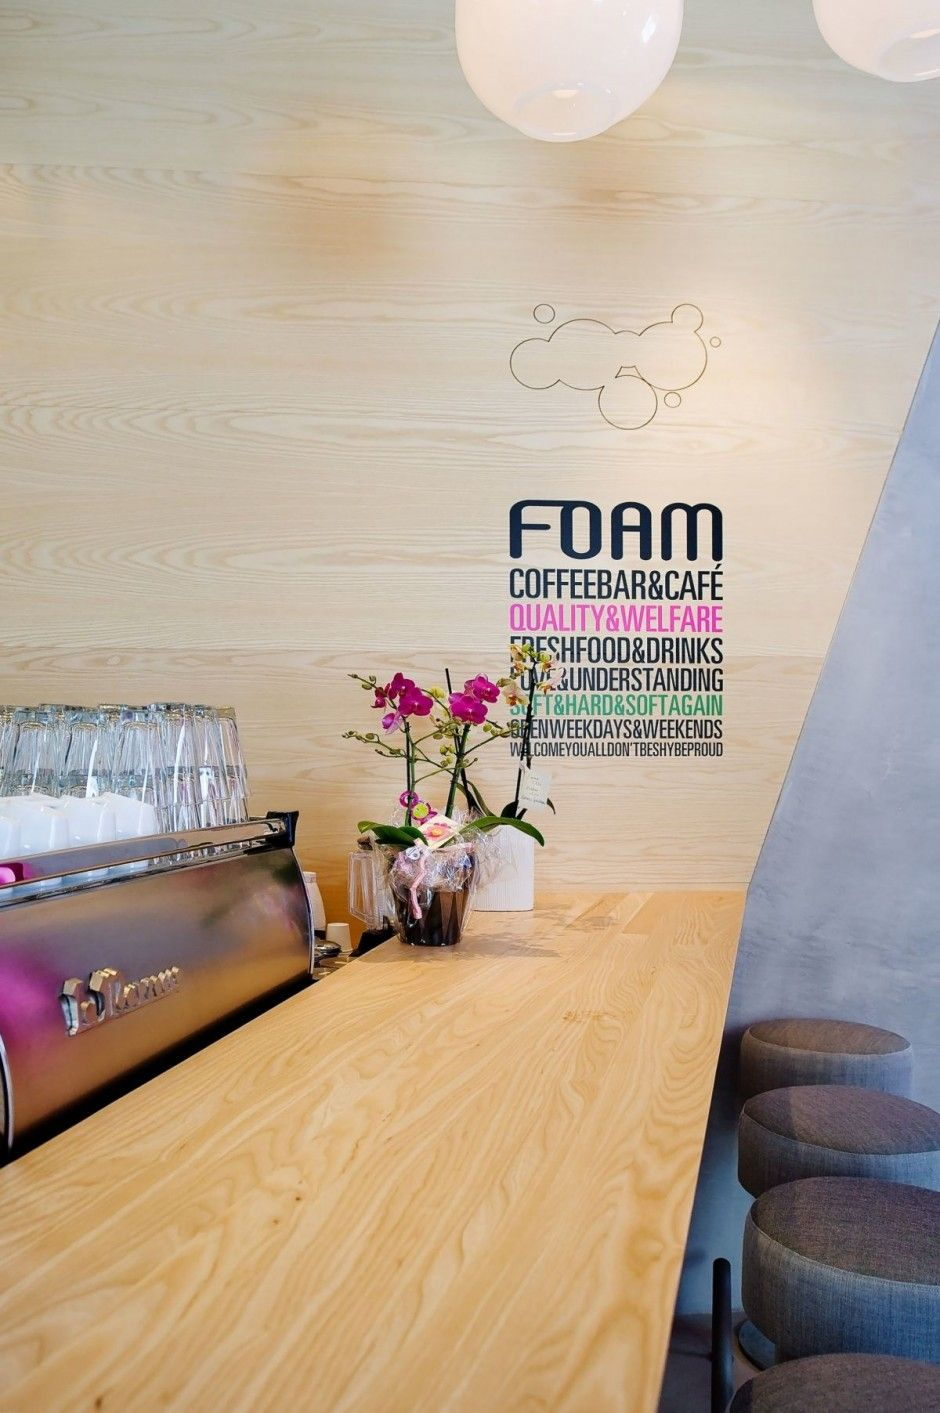 Foam Coffee Bar & Café. Perfectly placed wall typography. | Cafe ...